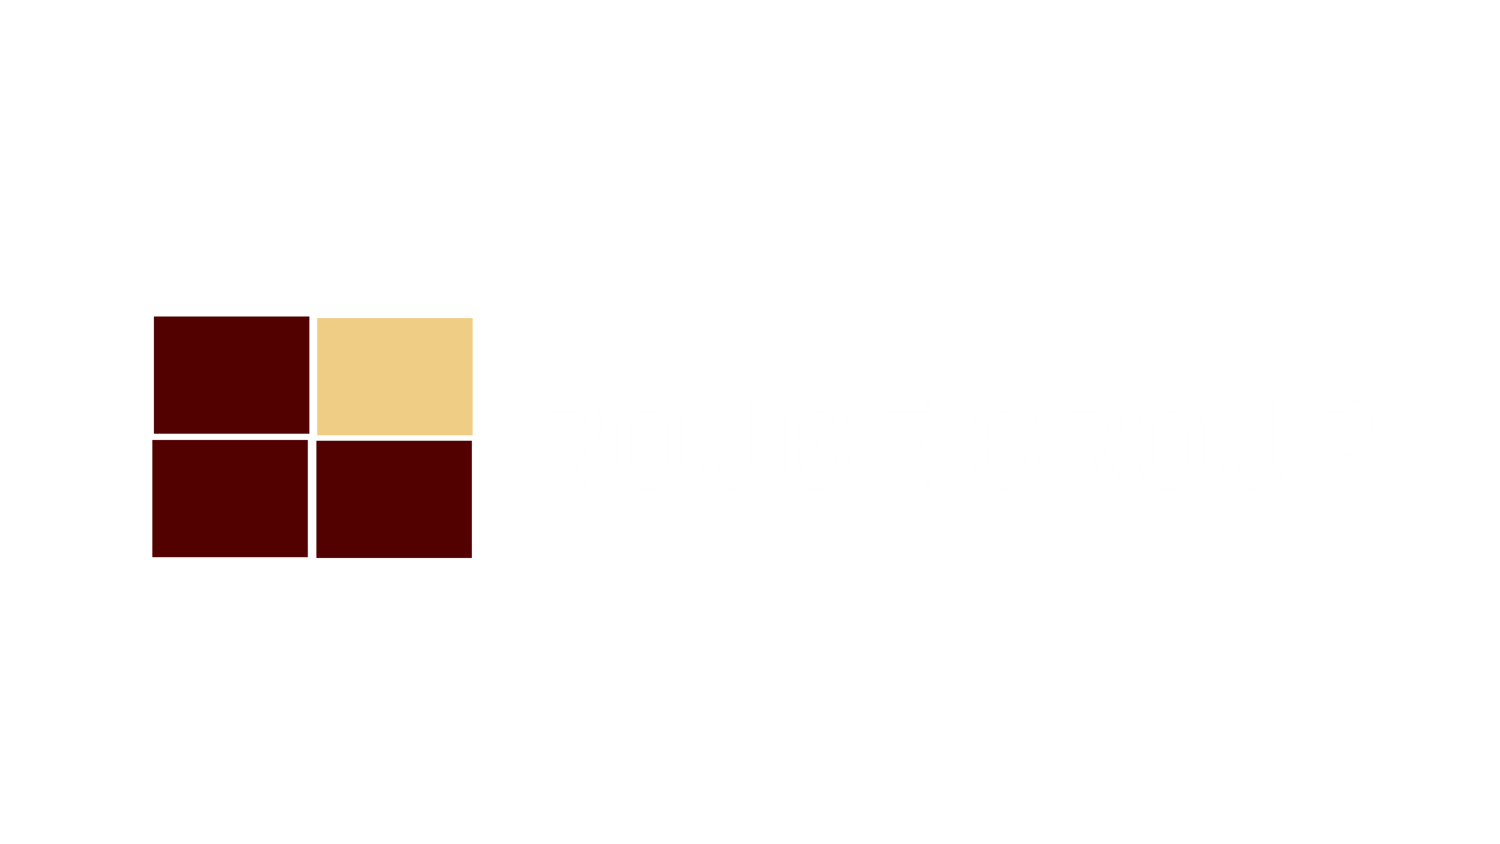 Rouge Group: Management Consulting for leaders on strategy, innovation, product management: Cloud, Platforms, and IOT.